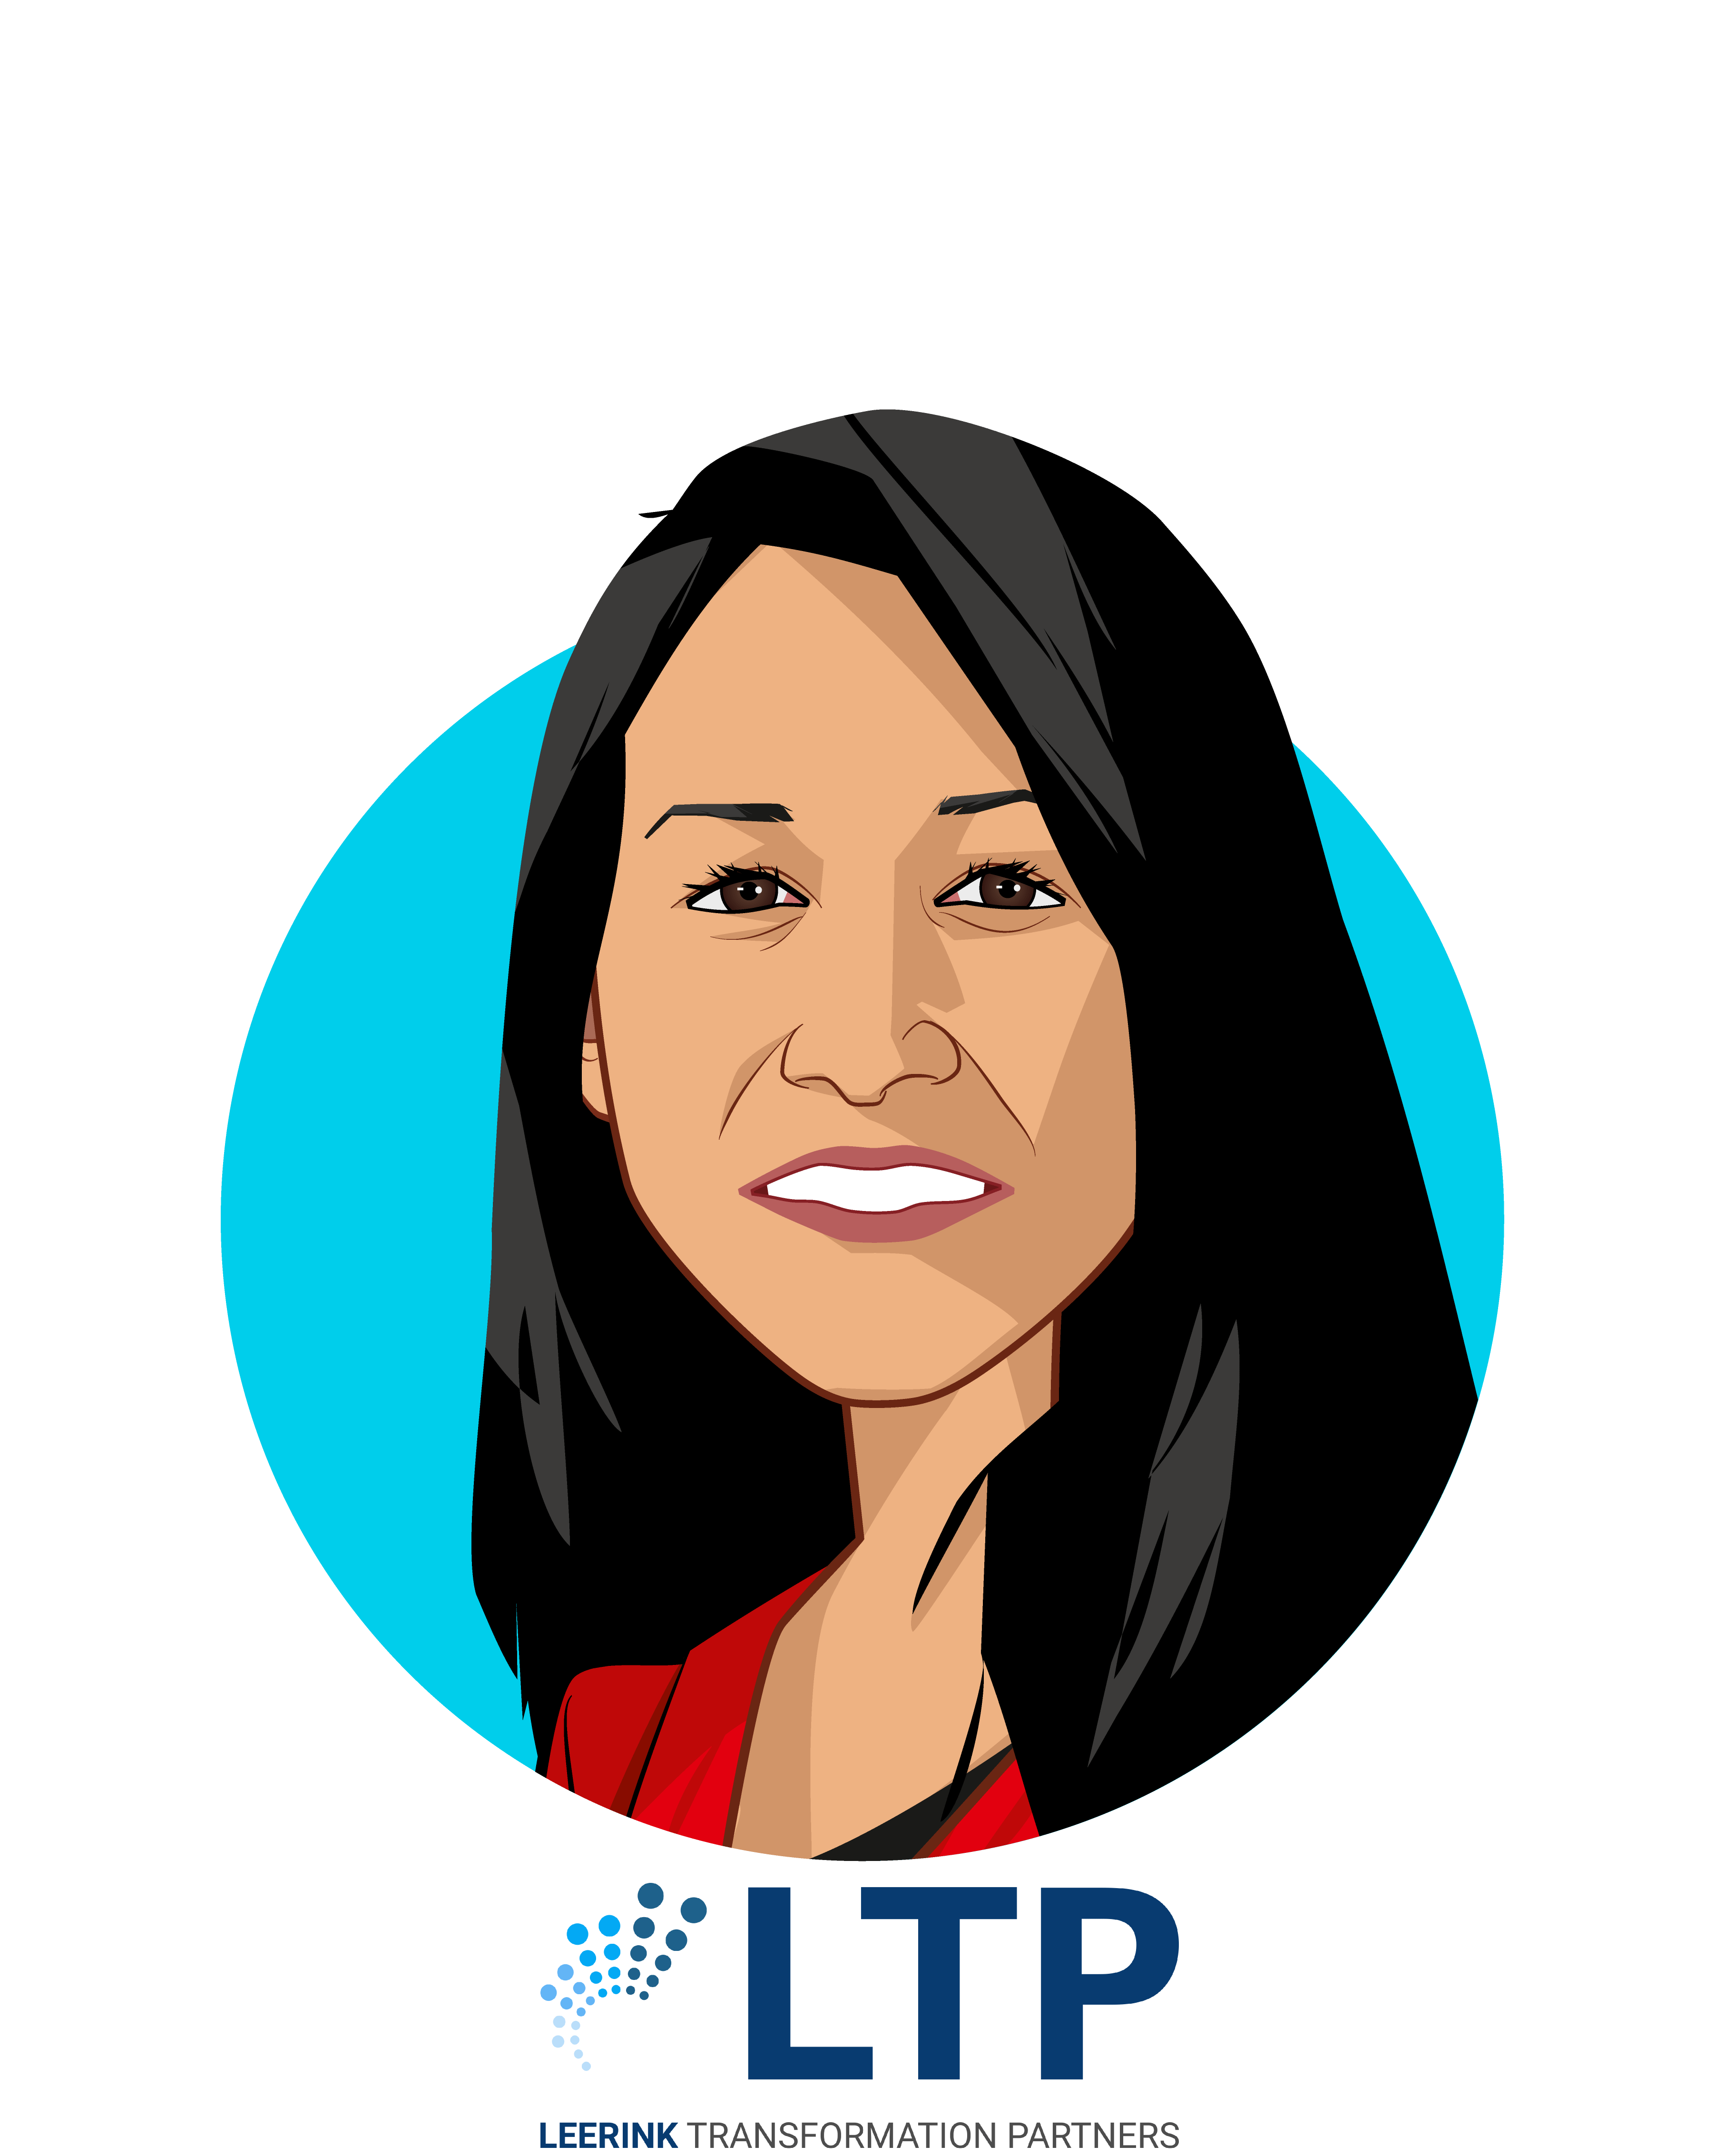 Main caricature of Sasha Khursheed Said, who is speaking at HLTH and is SVP of Revenue at LetsGetChecked at Advisor, Leerink Transformation Partners